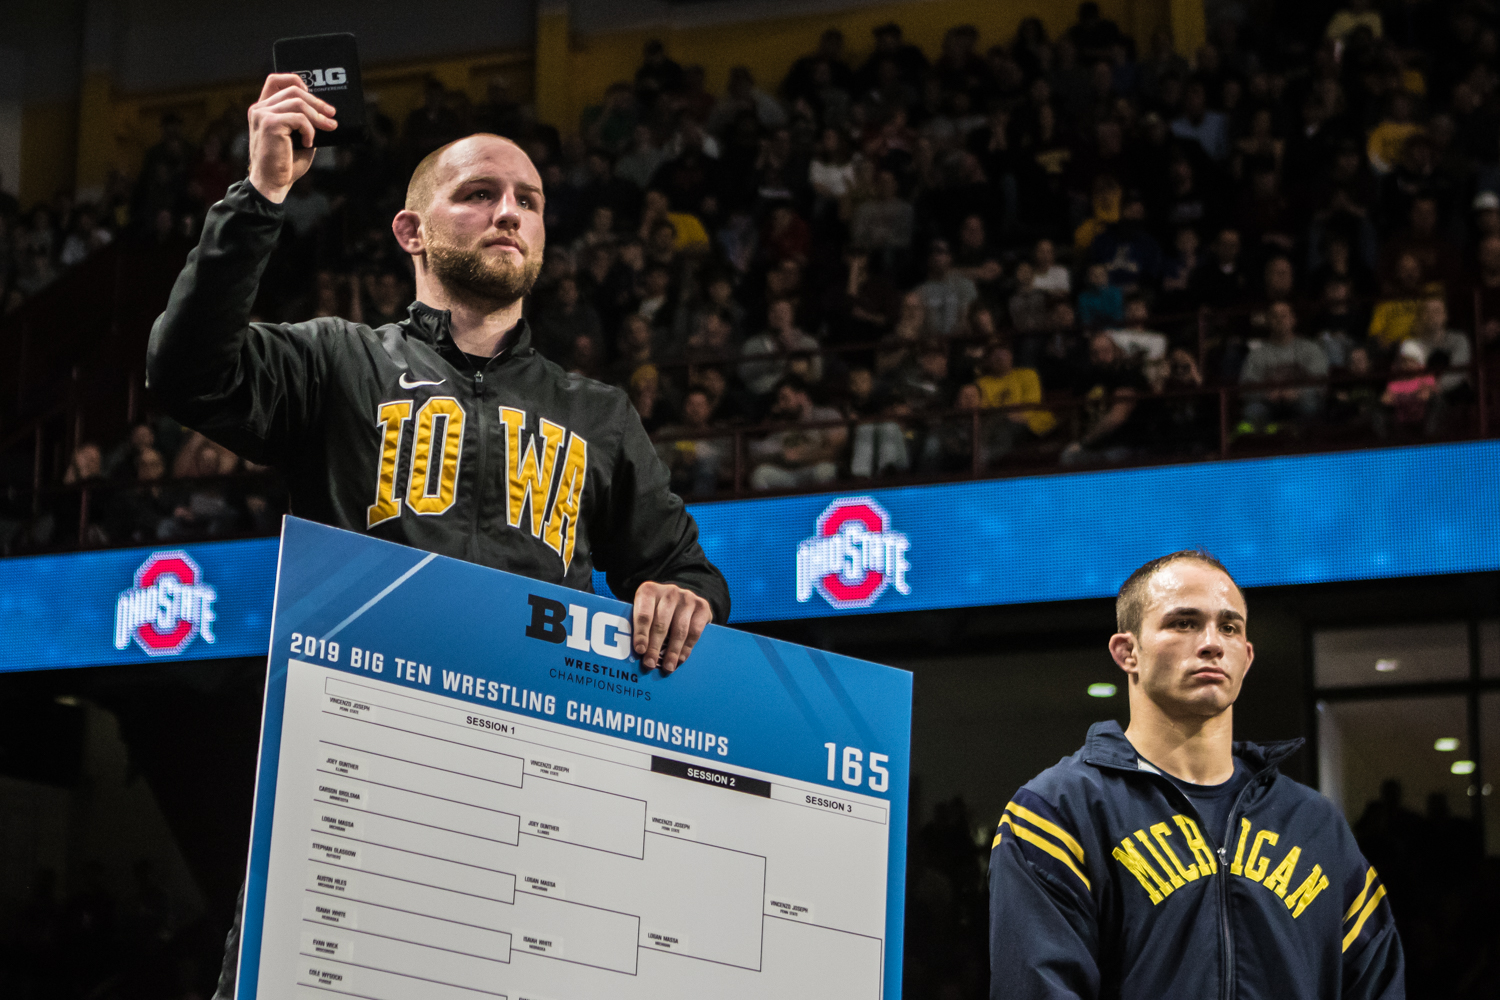 Iowa's Alex Marinelli is awarded first in the 165-lb weight class during the fourth session of the 2019 Big Ten Wrestling Championships in Minneapolis, MN on Sunday, March 10, 2019.